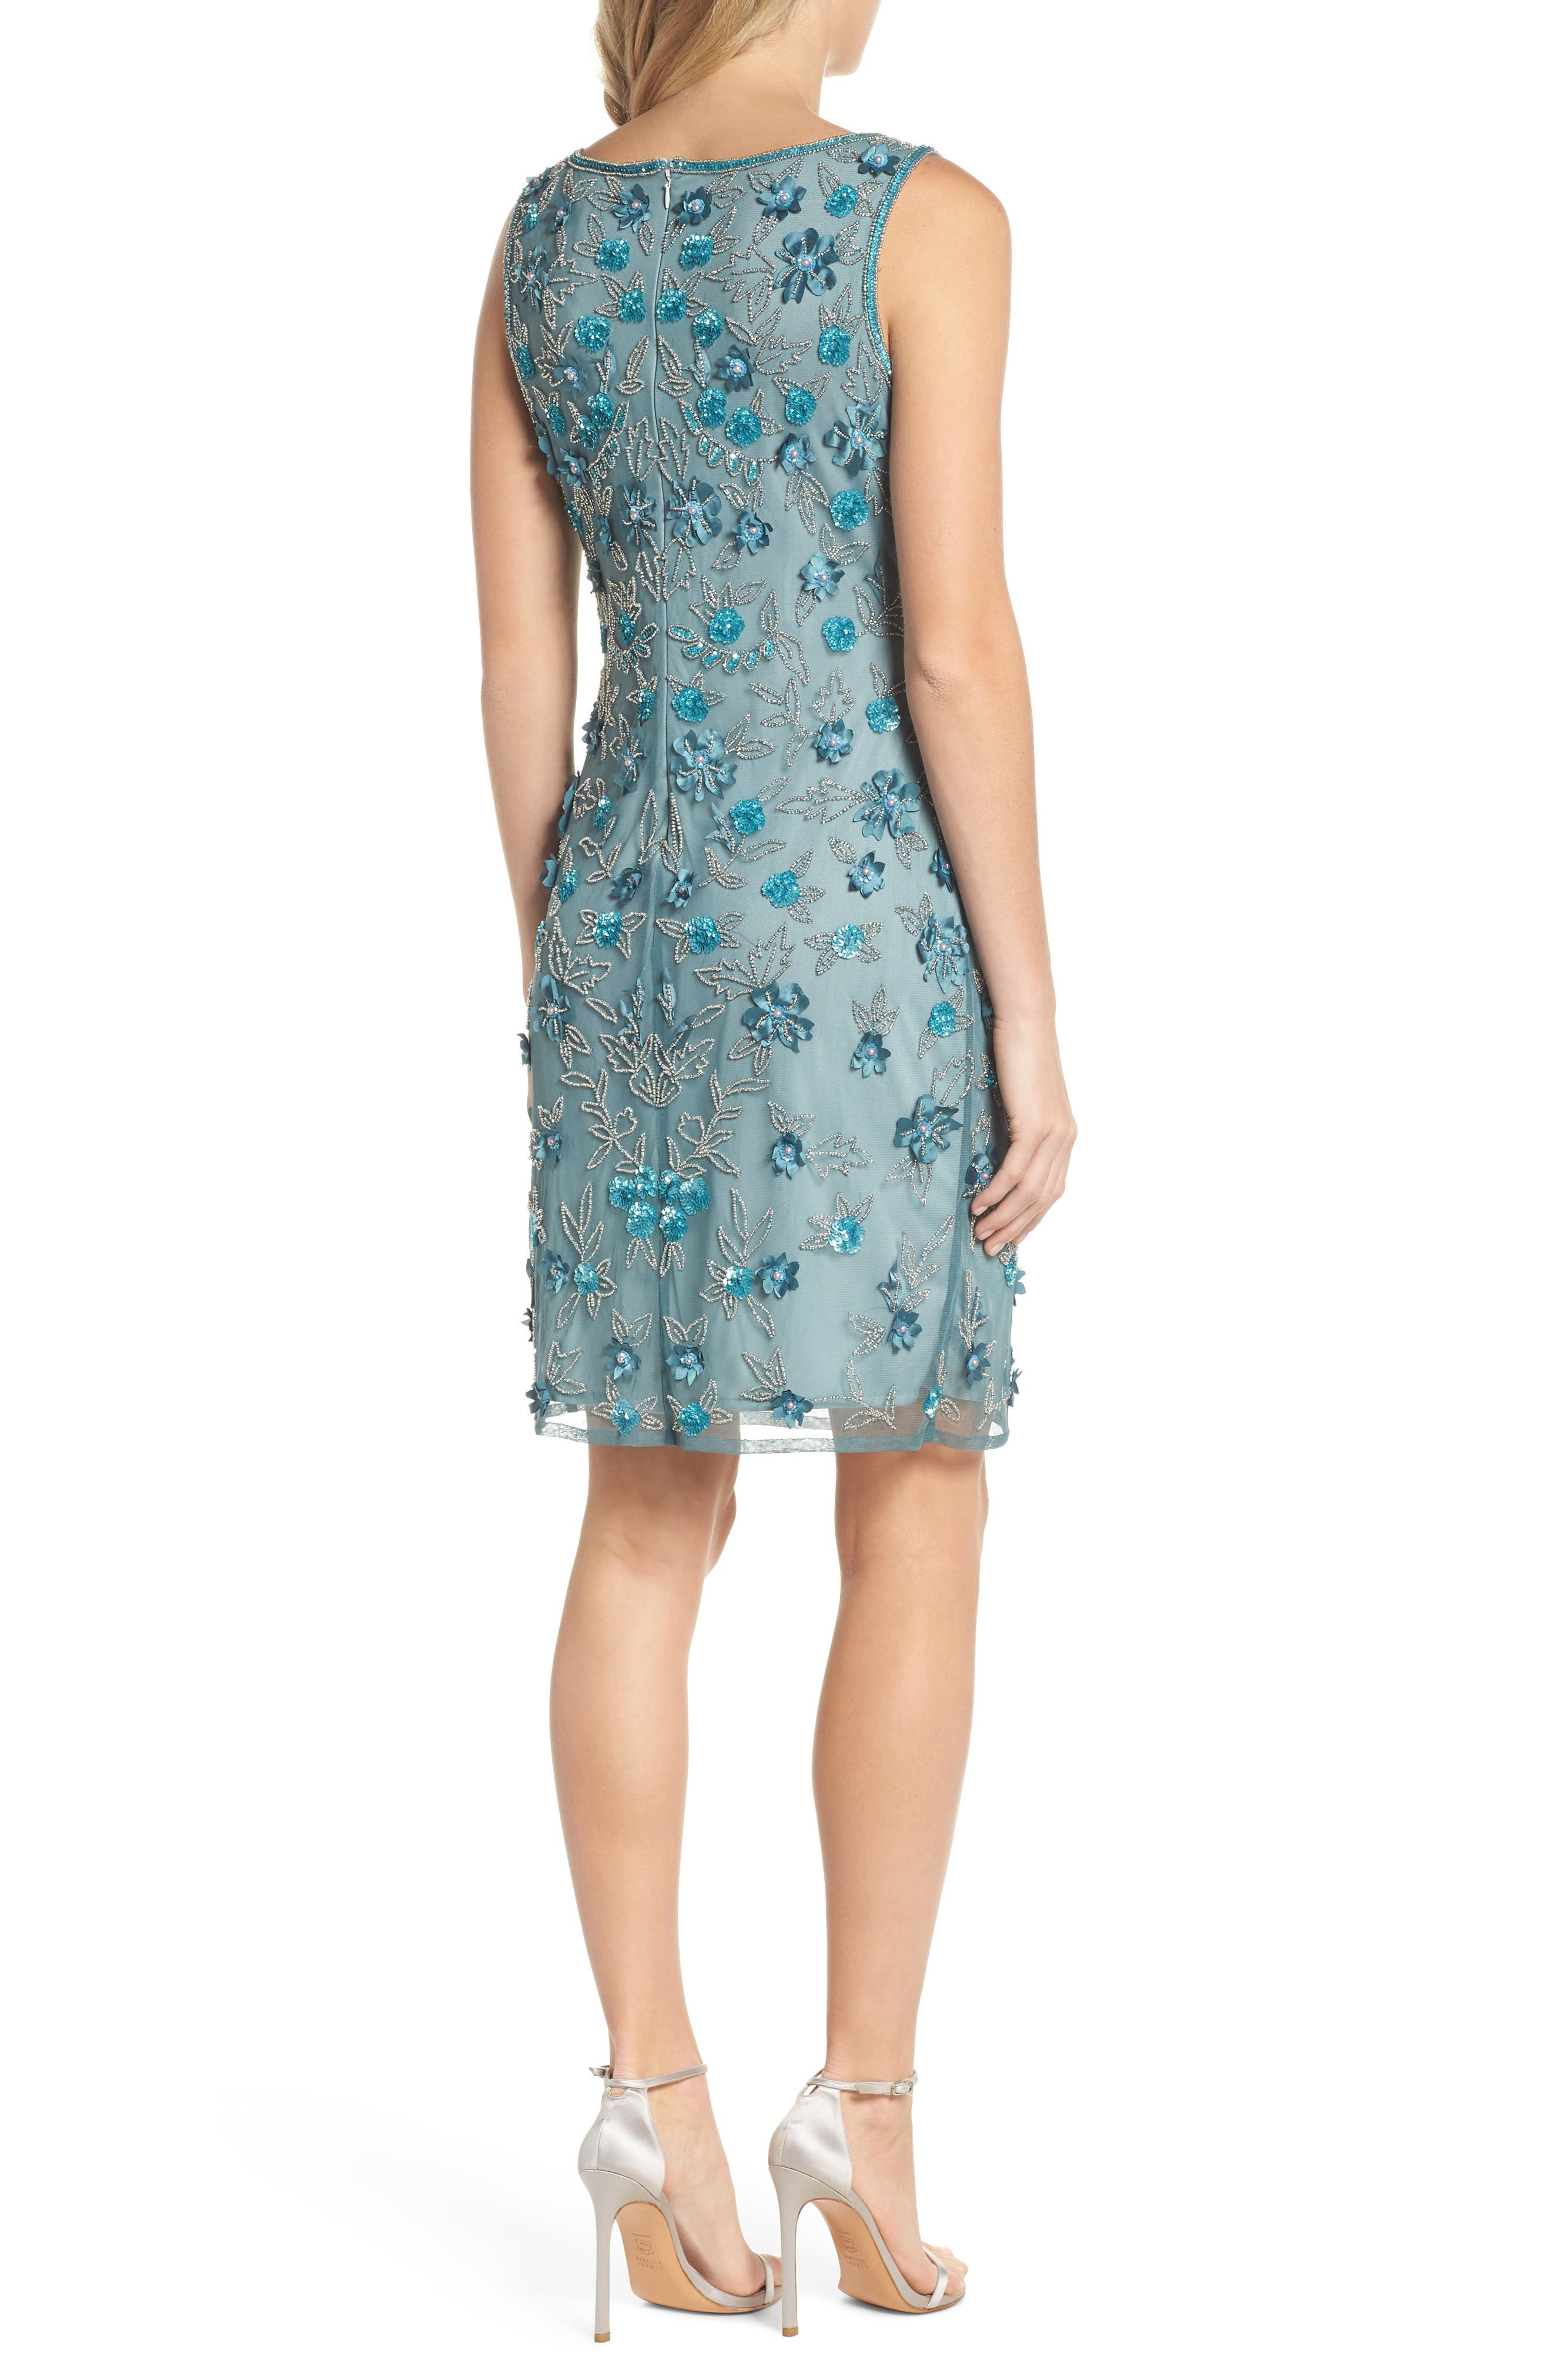 3D Floral Embellished Sheath Dress,                             Alternate thumbnail 2, color,                             400